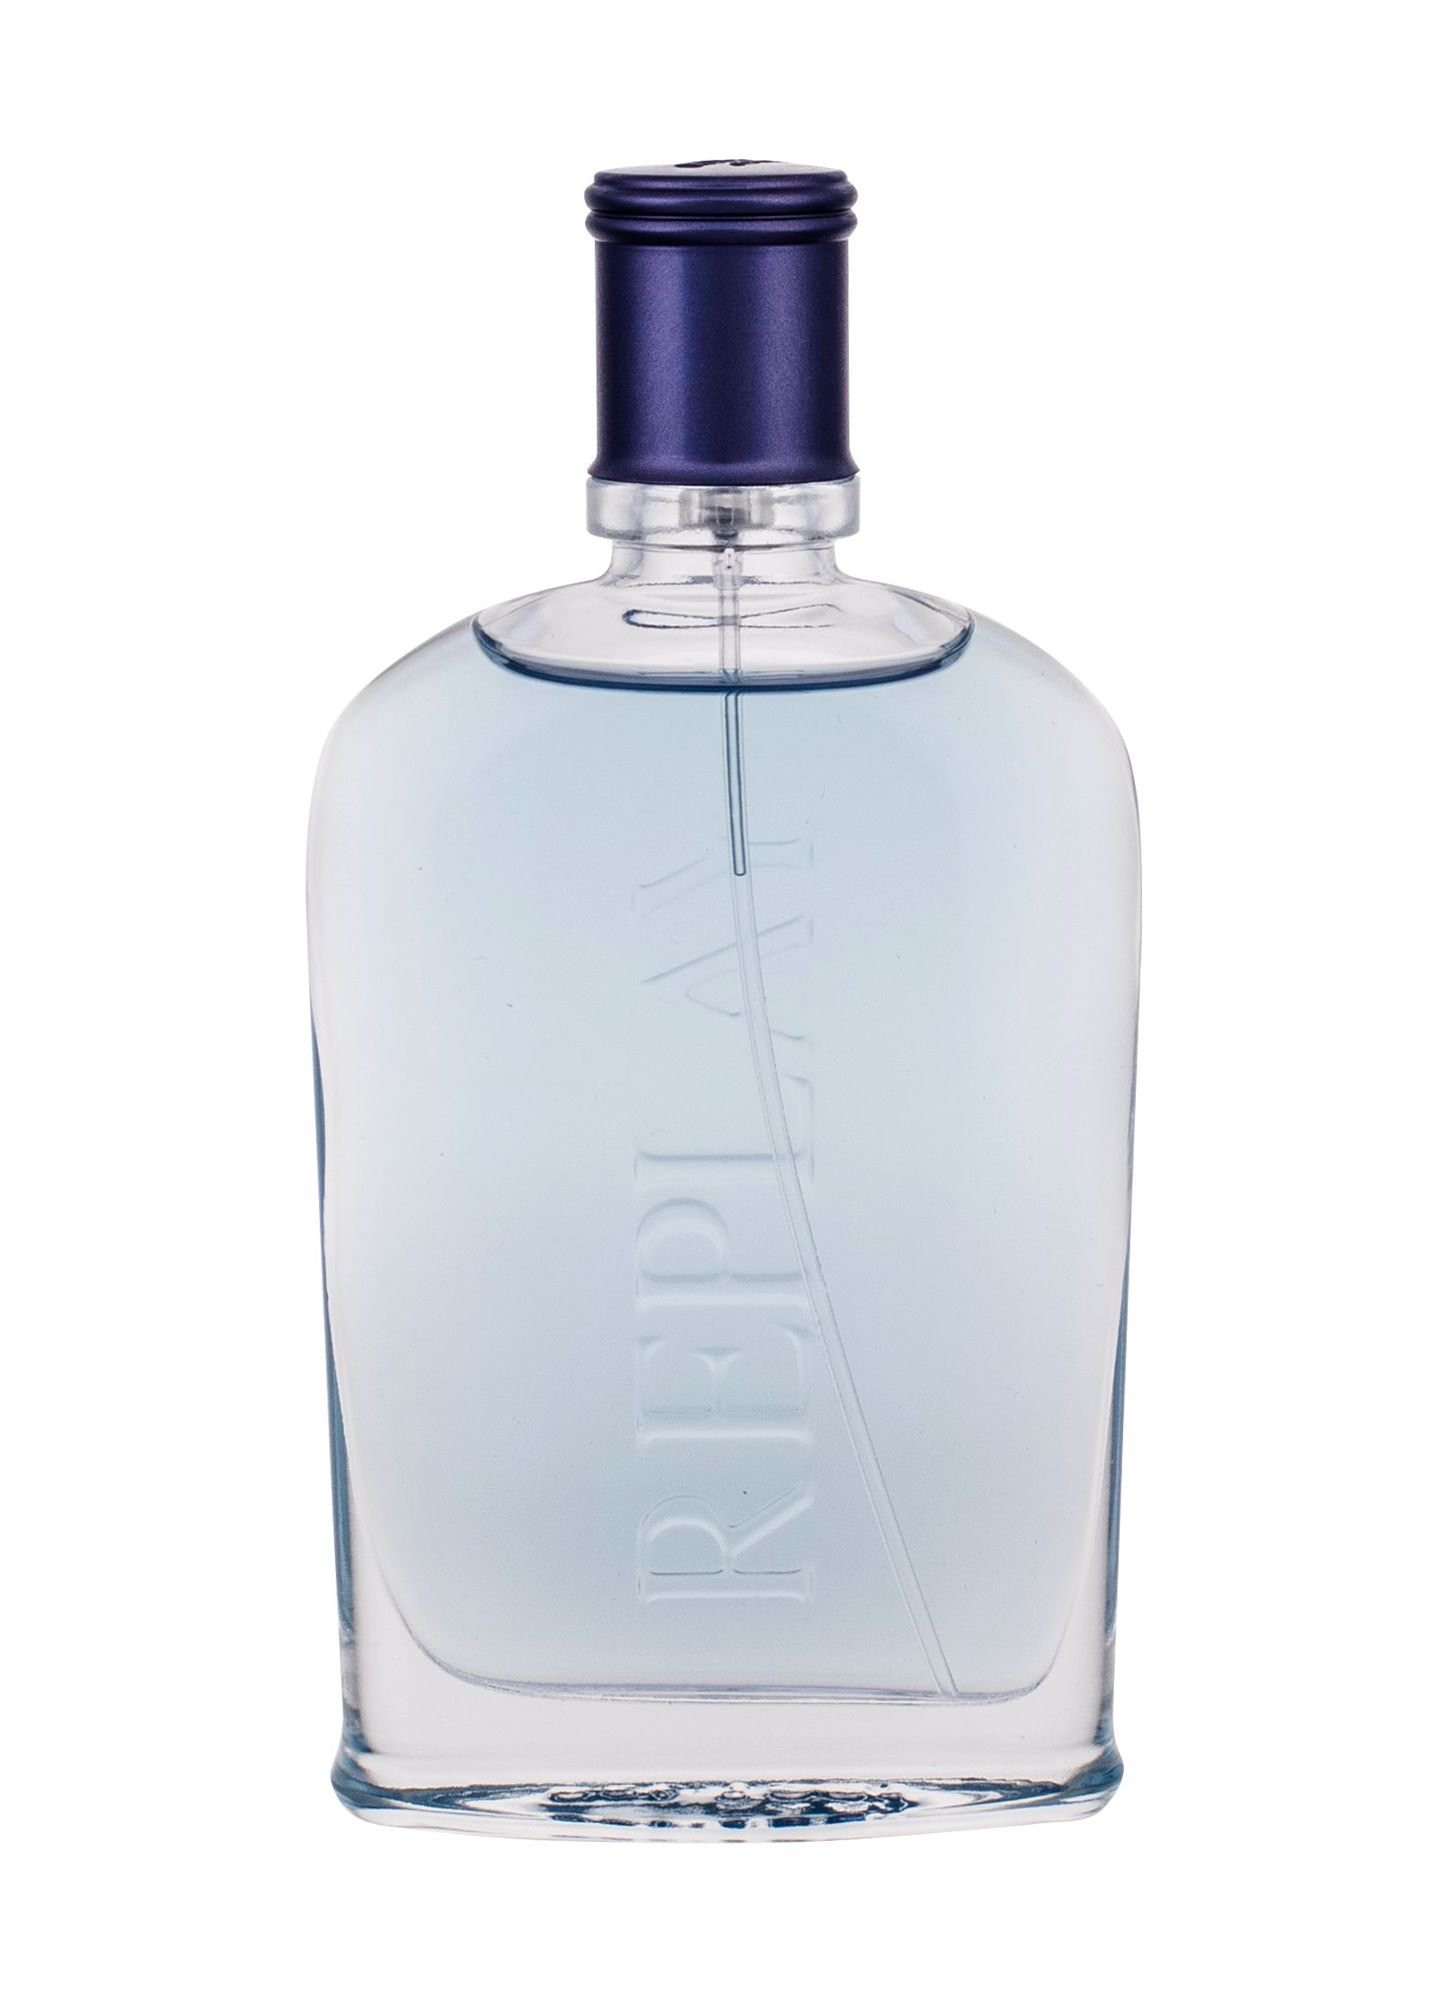 Replay Jeans Spirit! For Him, edt 75ml